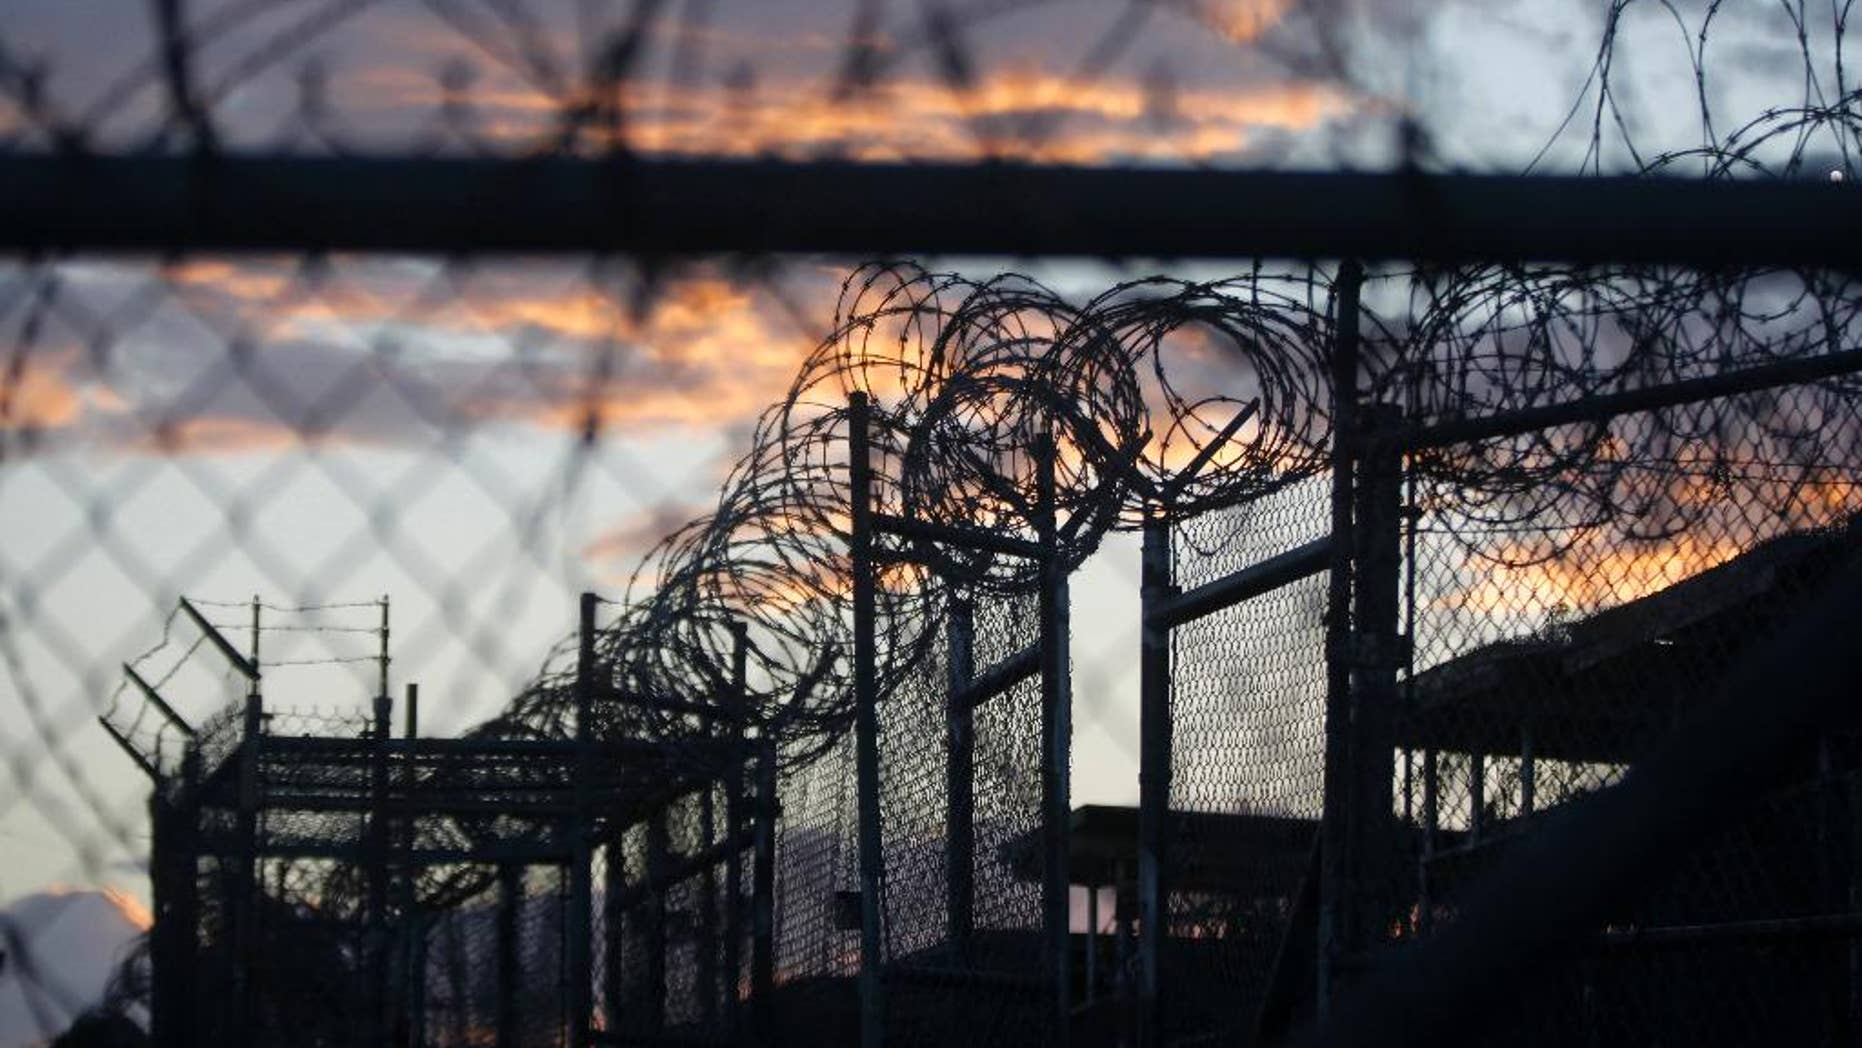 Nov. 21, 2013: Dawn arrives at the now closed Camp X-Ray, which was used as the first detention facility for Al Qaeda and Taliban militants who were captured after the Sept. 11 attacks, at the Guantanamo Bay Naval Base, Cuba. (AP Photo/Charles Dharapak, File)